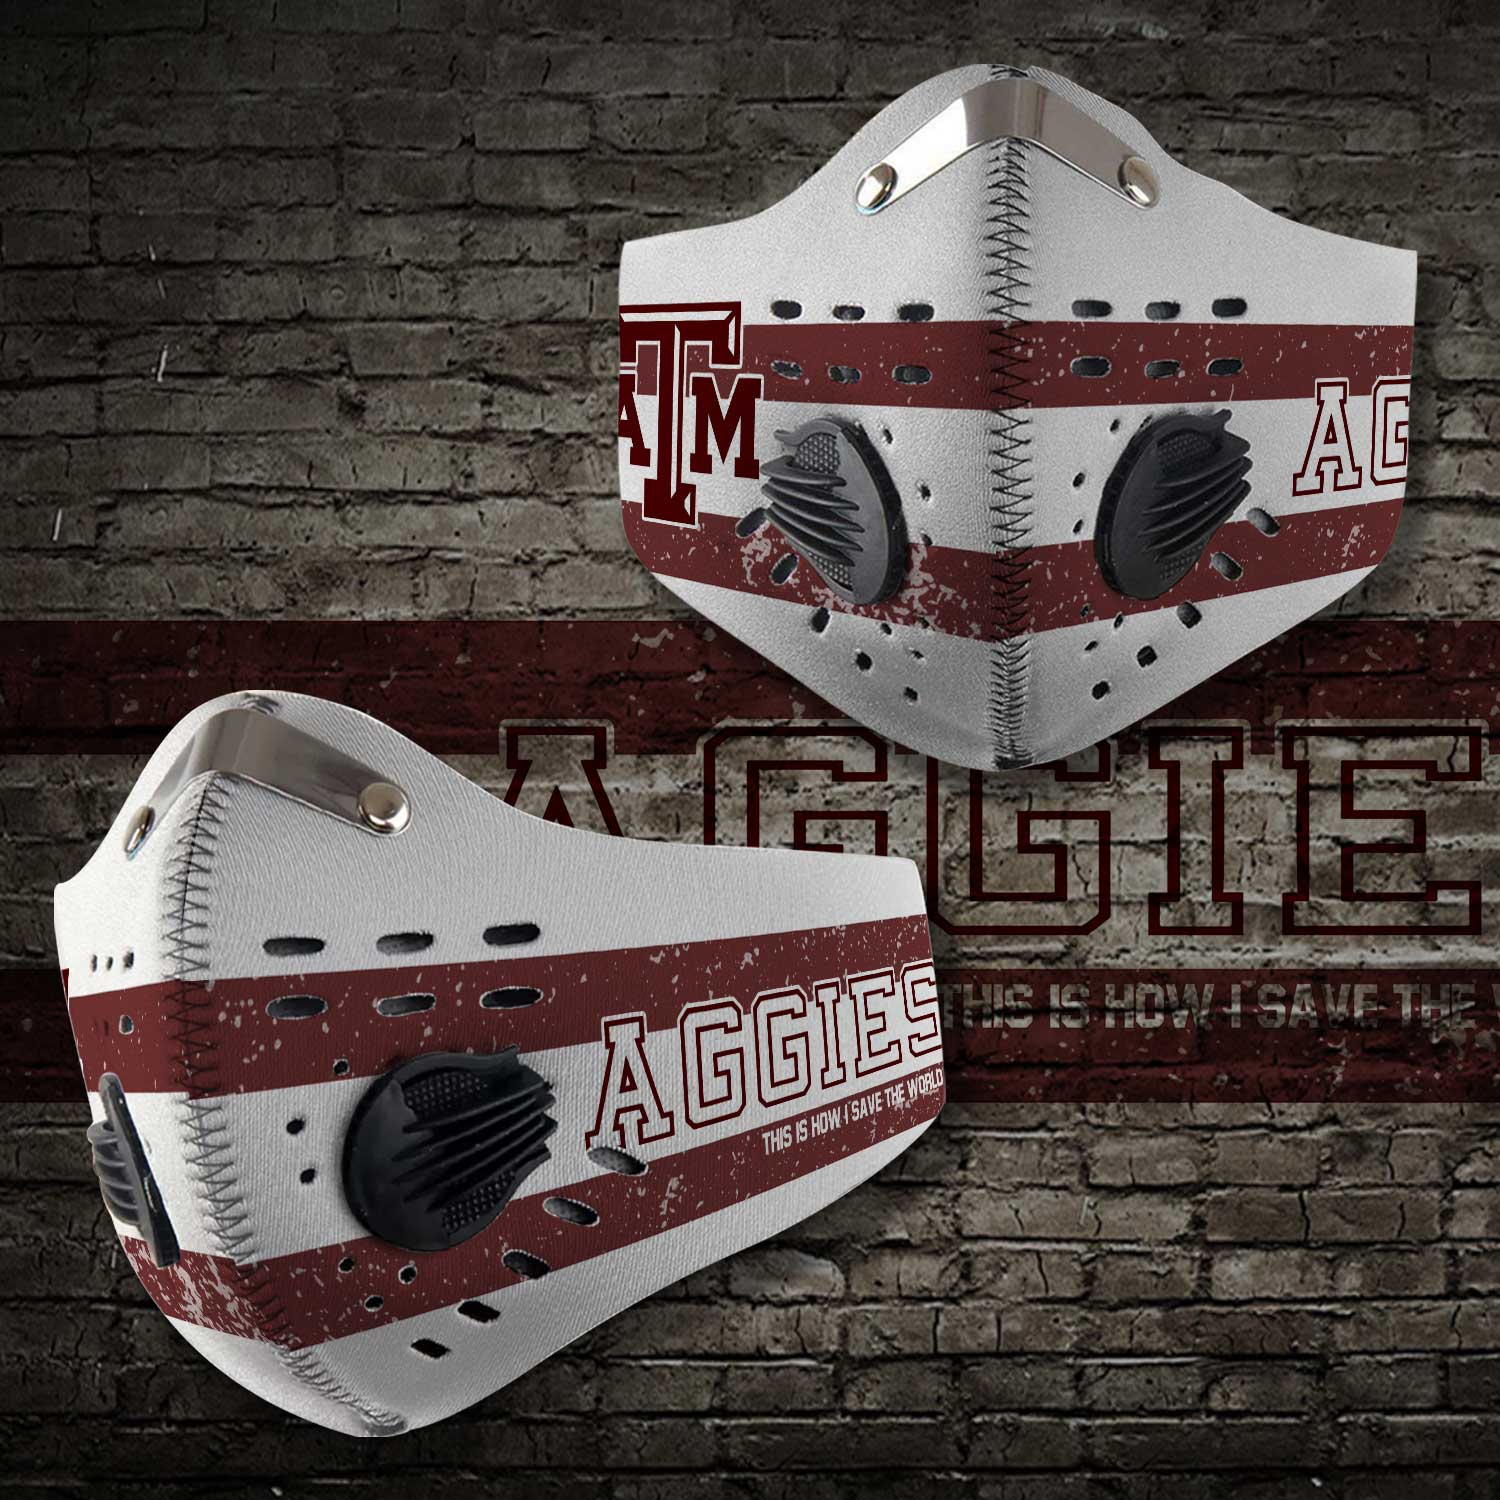 Texas am aggies football this is how i save the world face mask 2